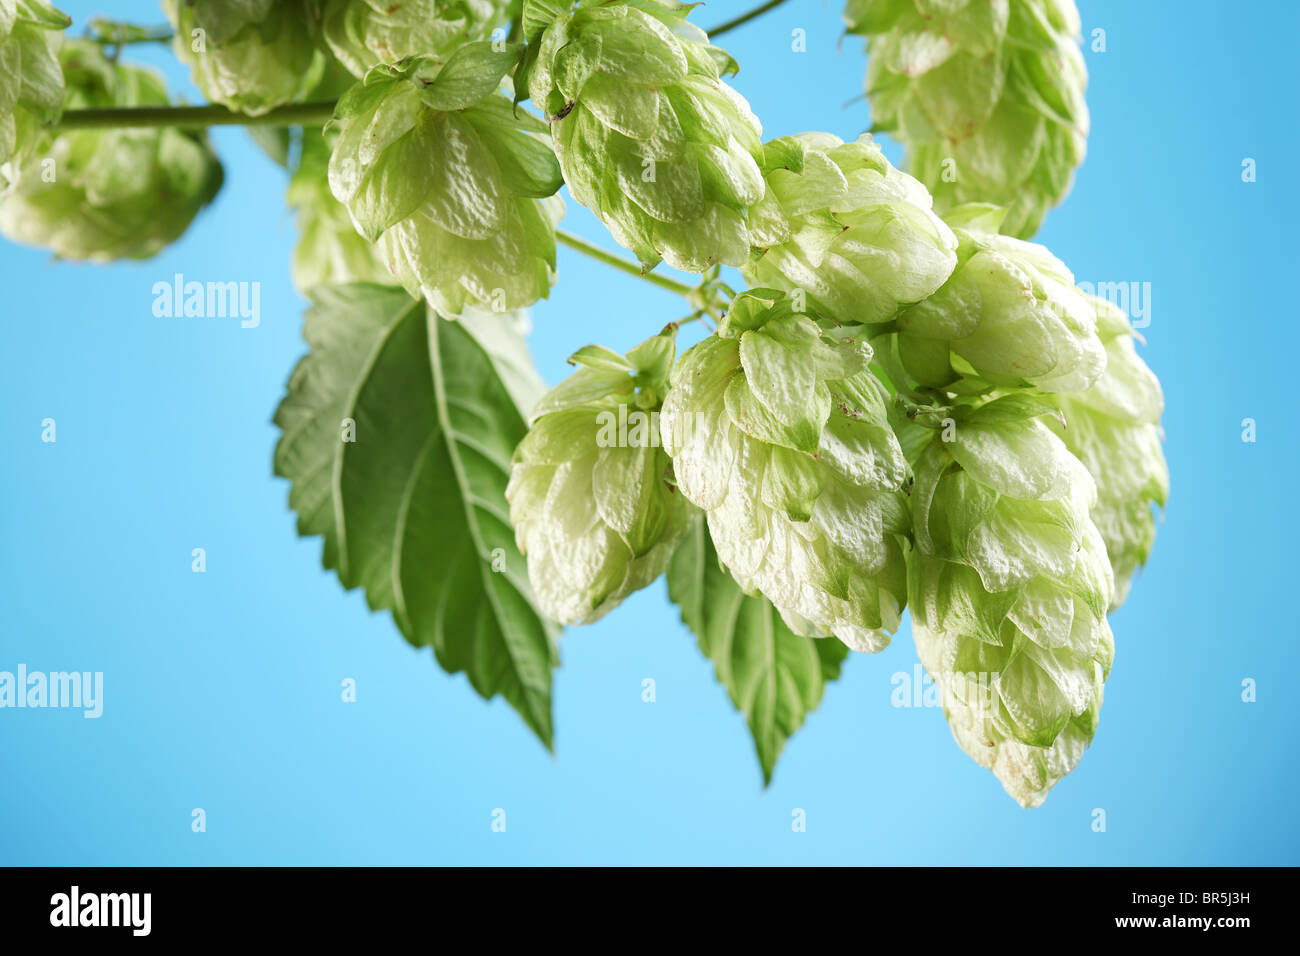 branch of hops on a blue background - Stock Image